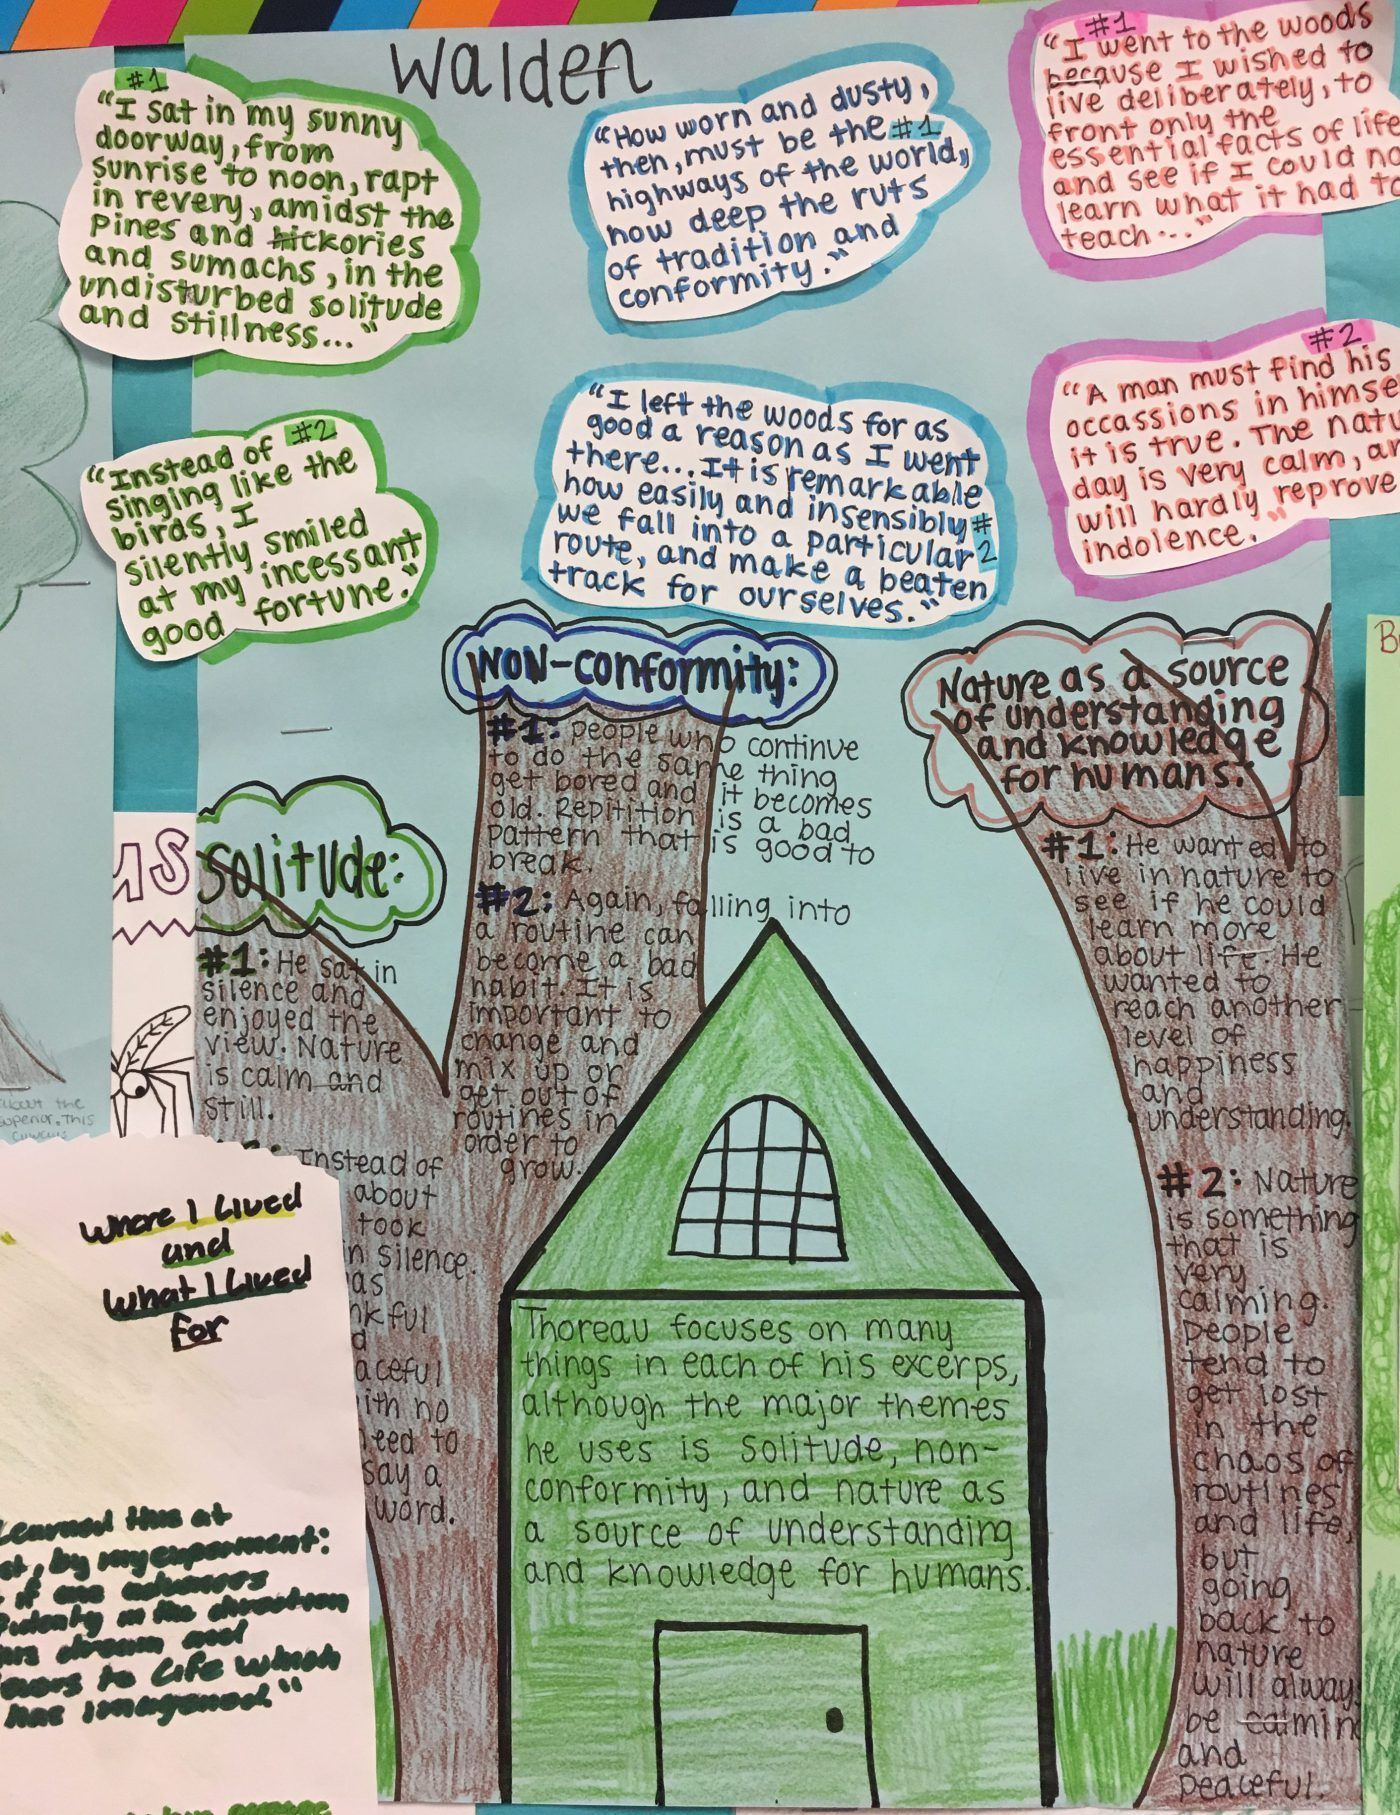 analyzing literature with graphic essays  students share their  analyzing literature with graphic essays  students share their  interpretations and analysis of transcendentalist themes in excerpts of  walden by henry